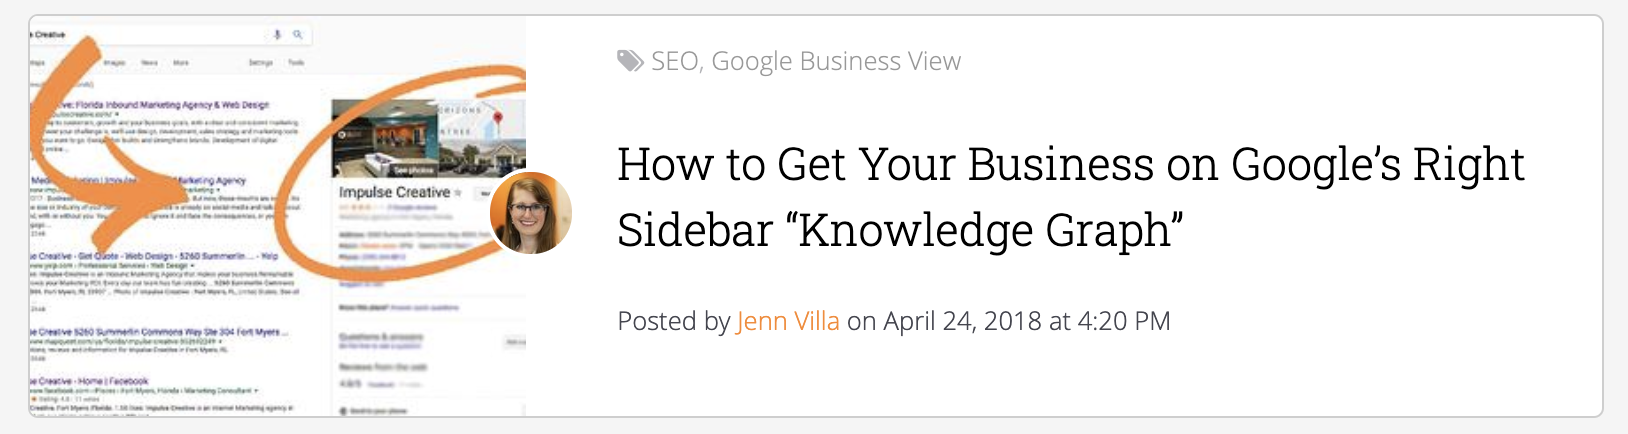 3_googles-right-sidebar-knowledge-graph-article